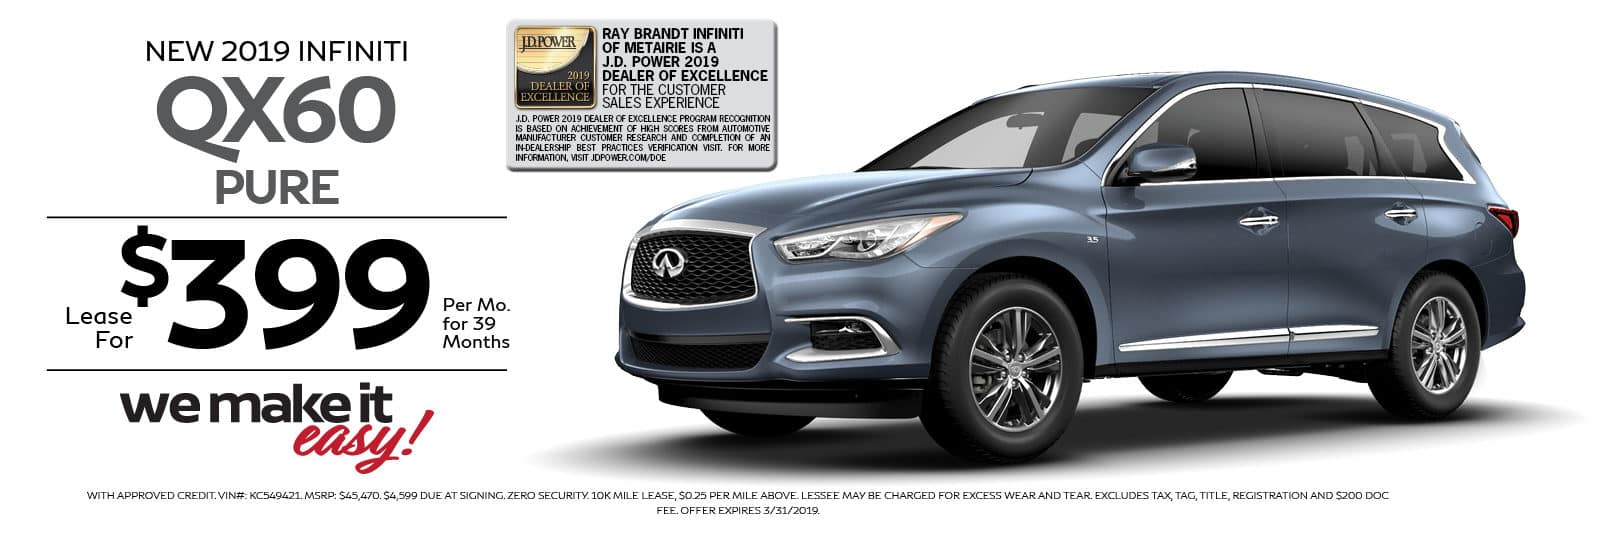 QX60 PURE SPECIAL